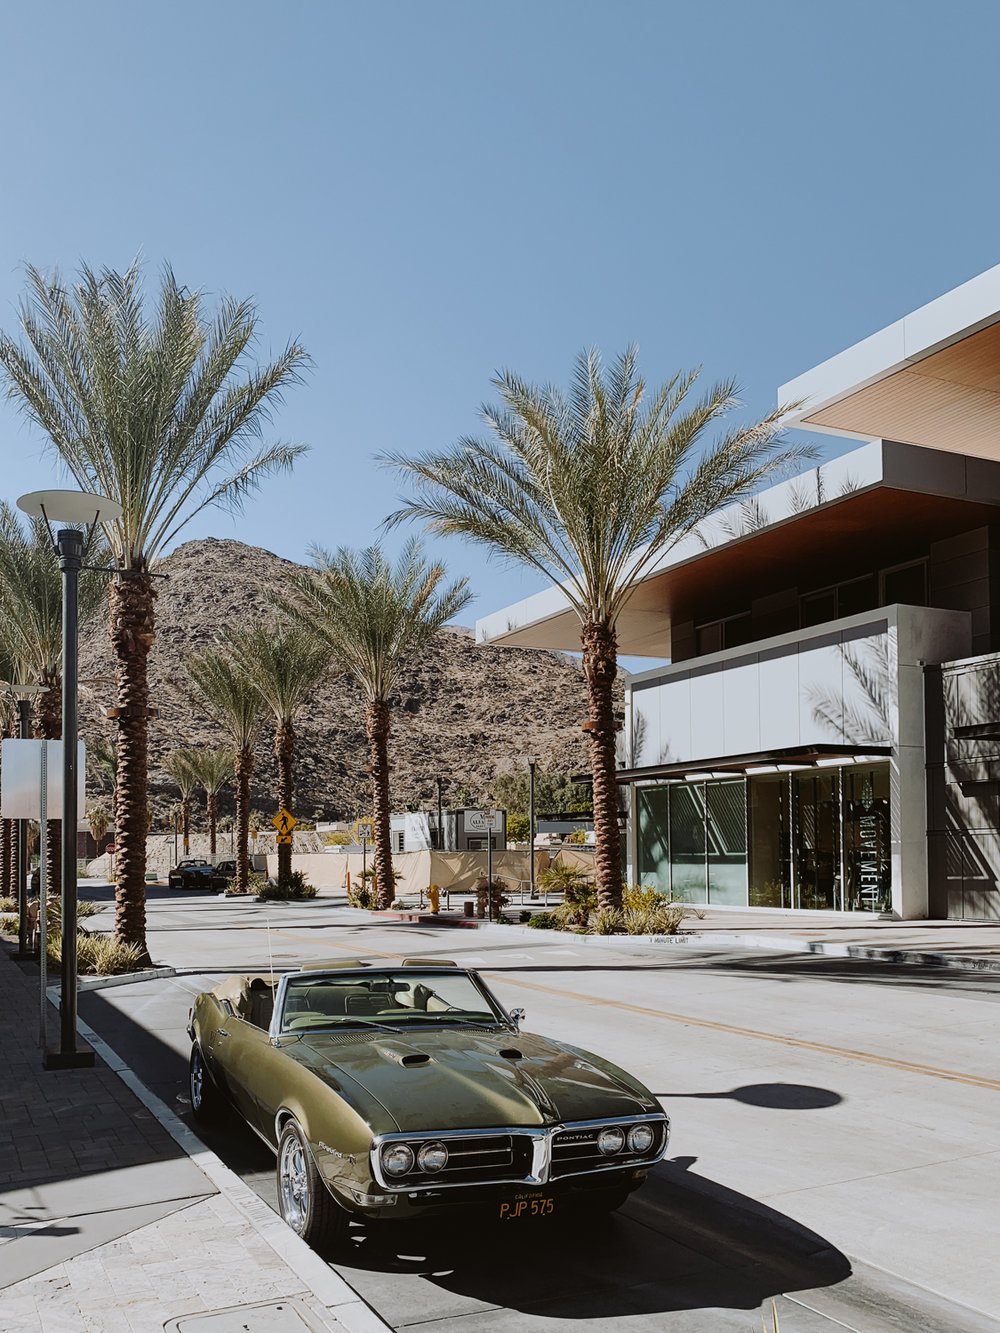 palm_springs_downtown_old_car.jpg